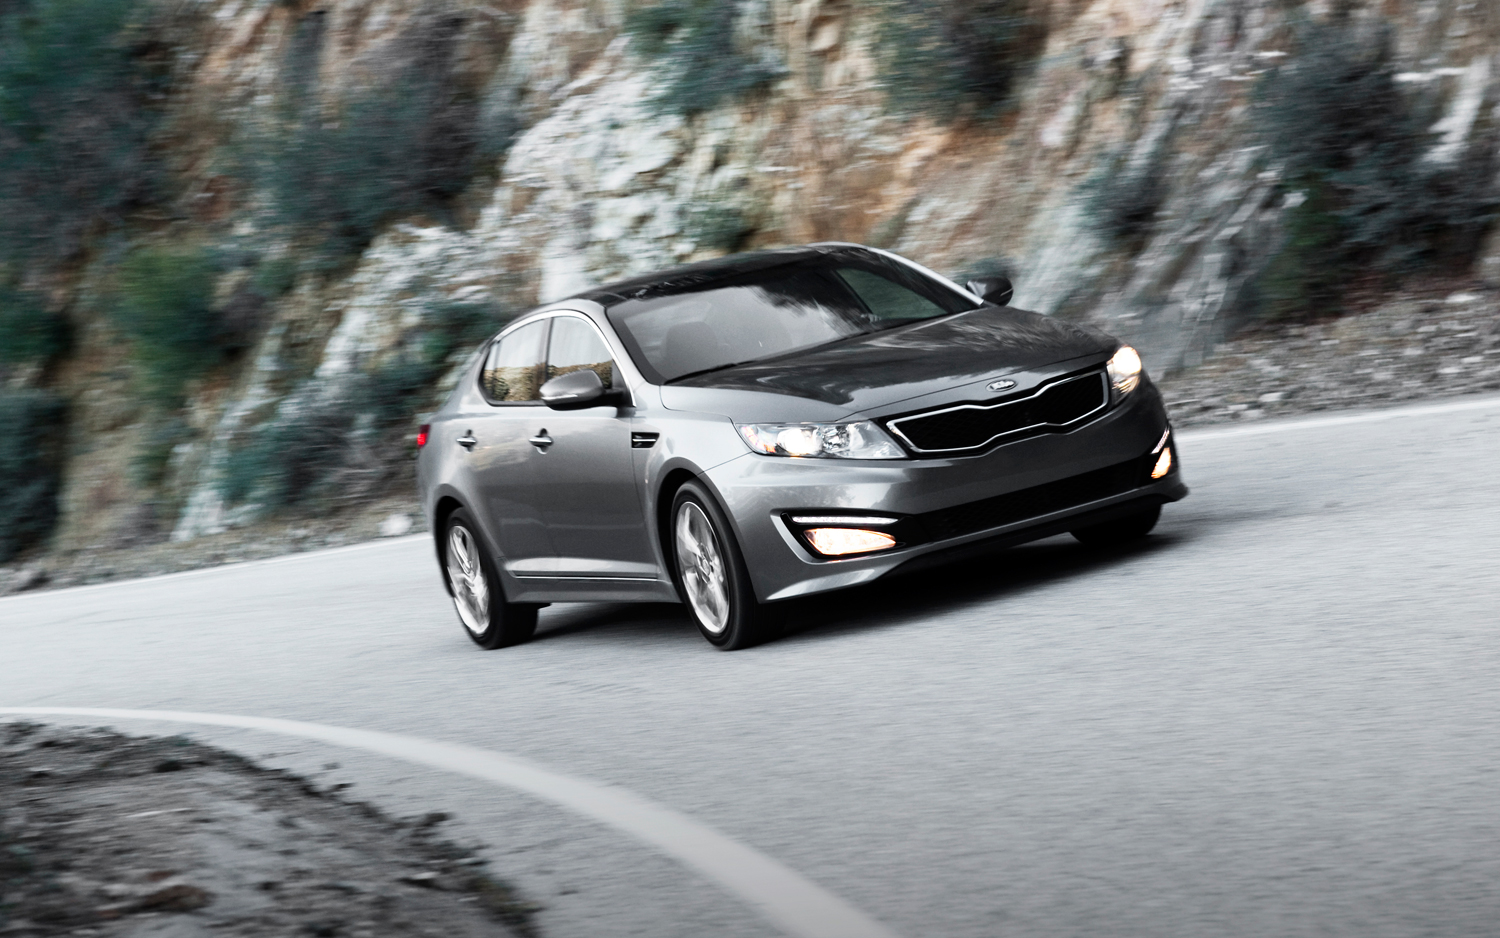 2013 Kia Optima SXL Long Term Update 4